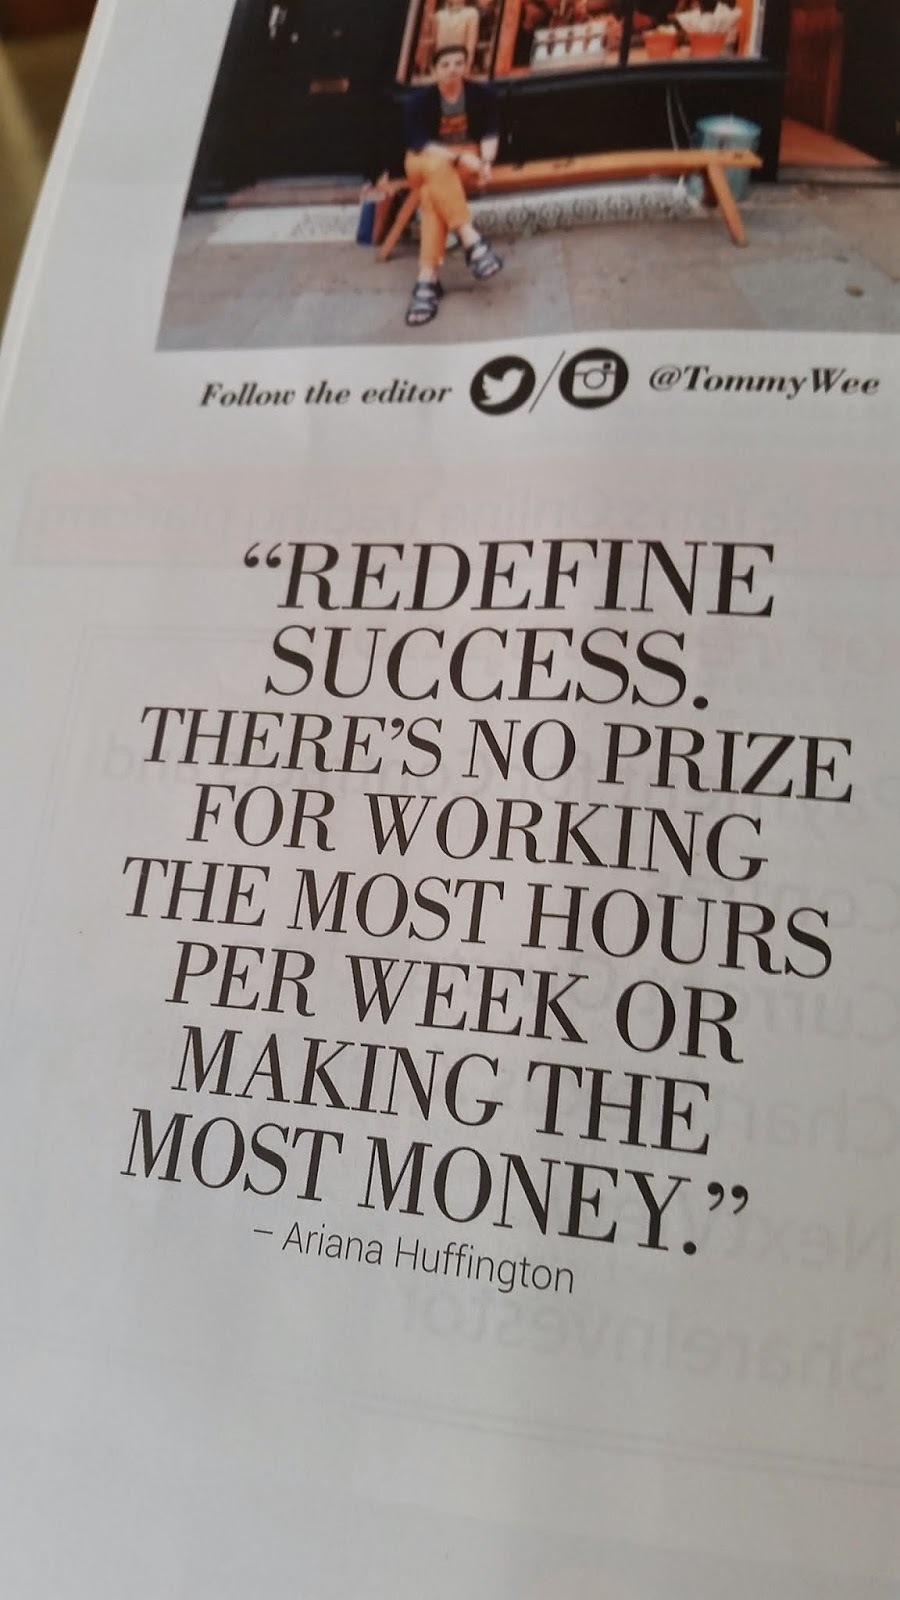 Quote about redefining success